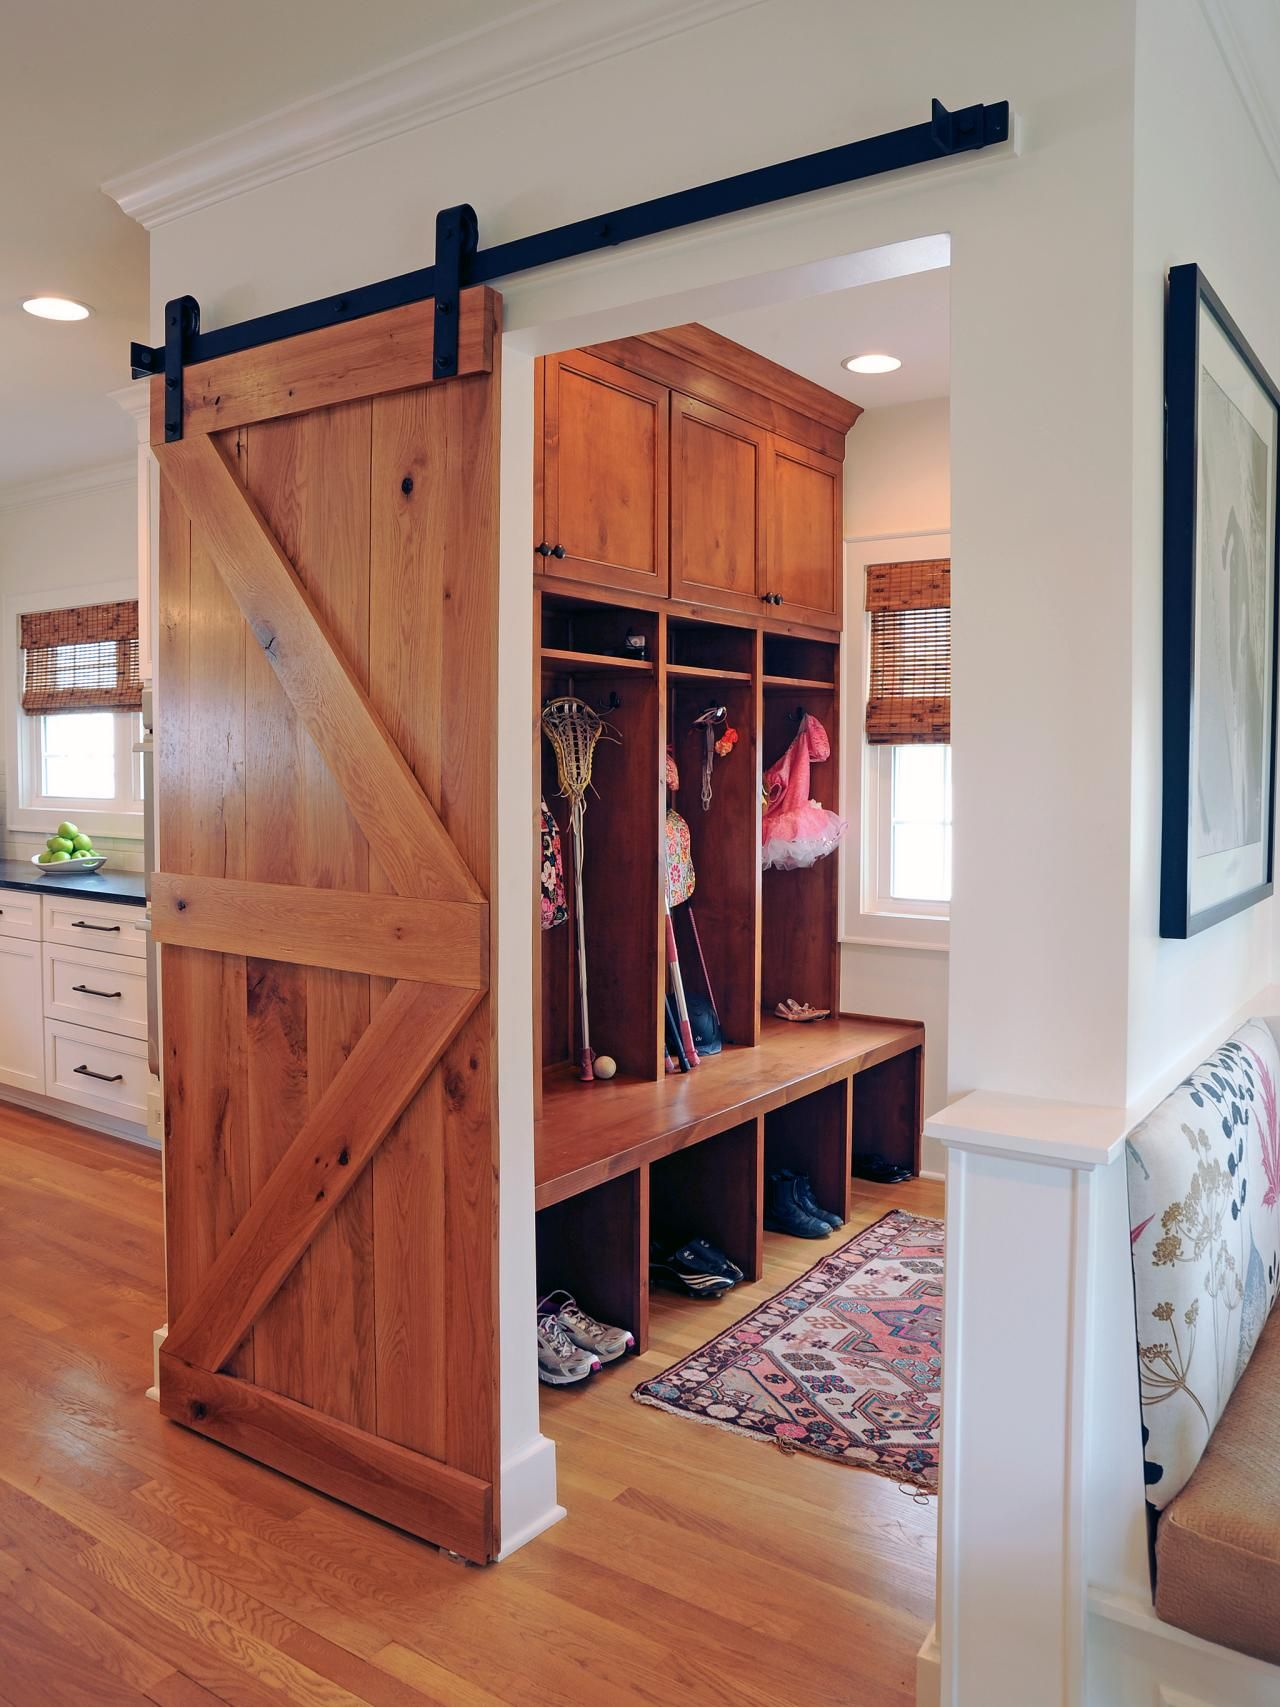 45 Superb Mudroom Entryway Design Ideas With Benches And Storage